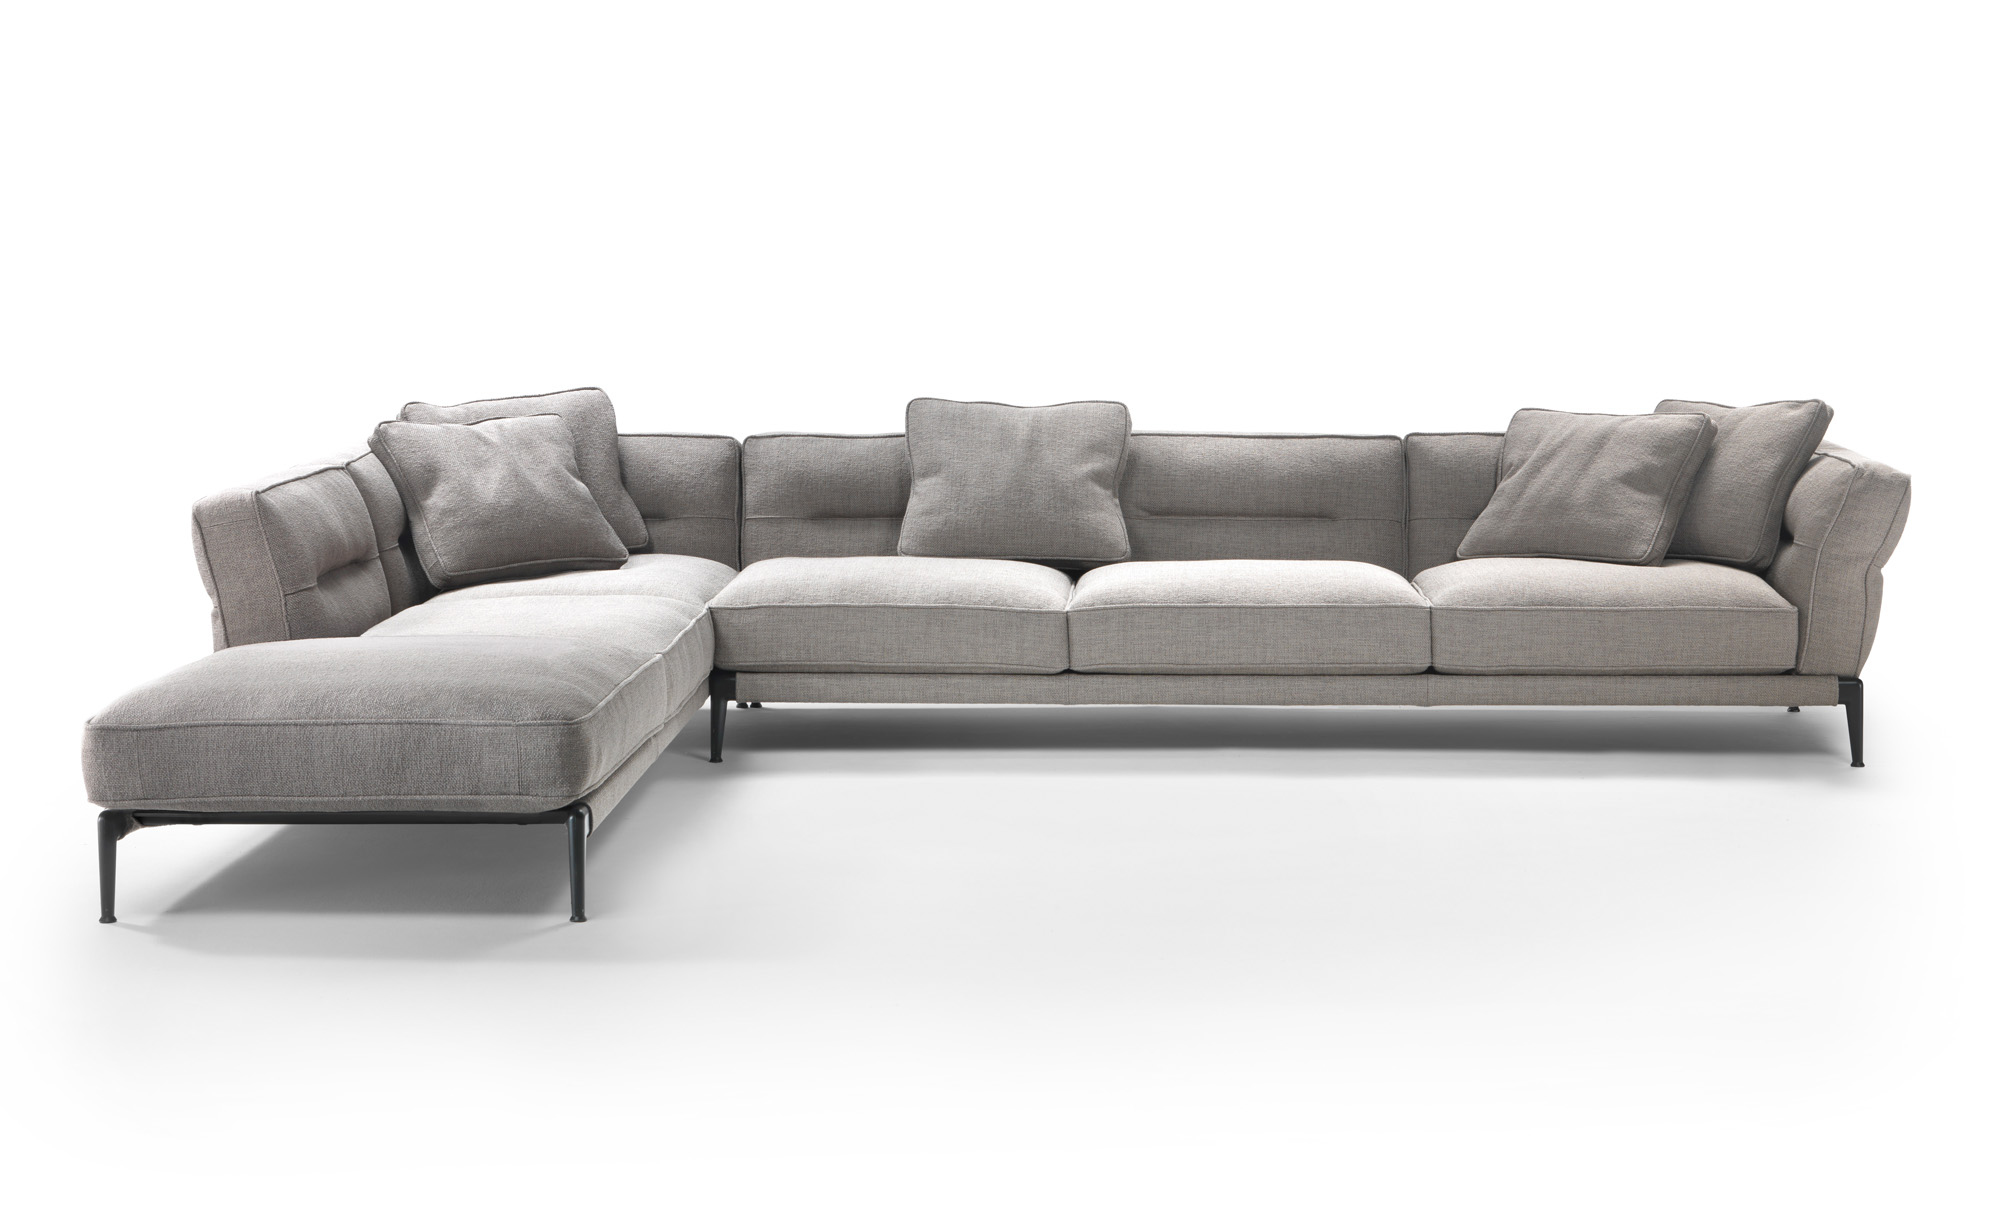 Best Quality Sofas Australia Modulare Sofas Modular Sofa Range By Freestyle Of